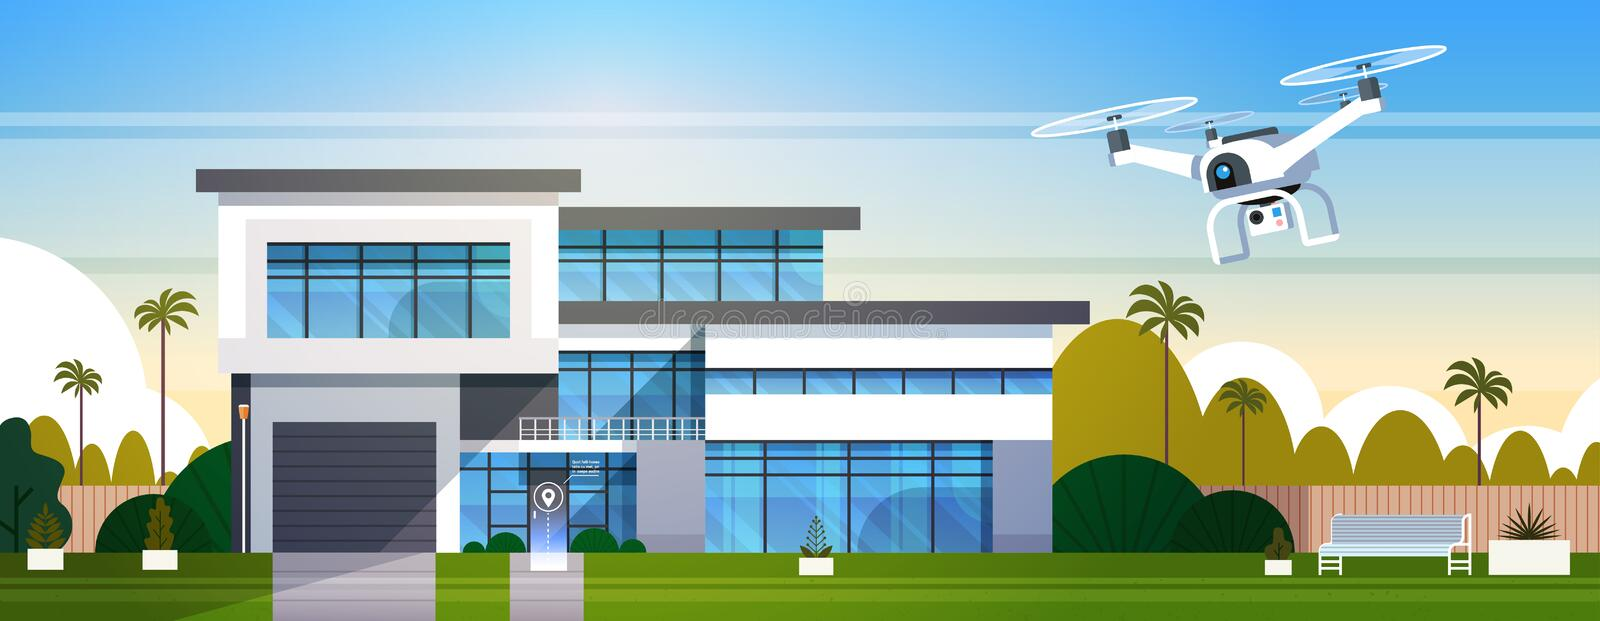 Modern Drone Fly Over House Building With Box, Air Transportation And Delivery Technology Concept royalty free illustration